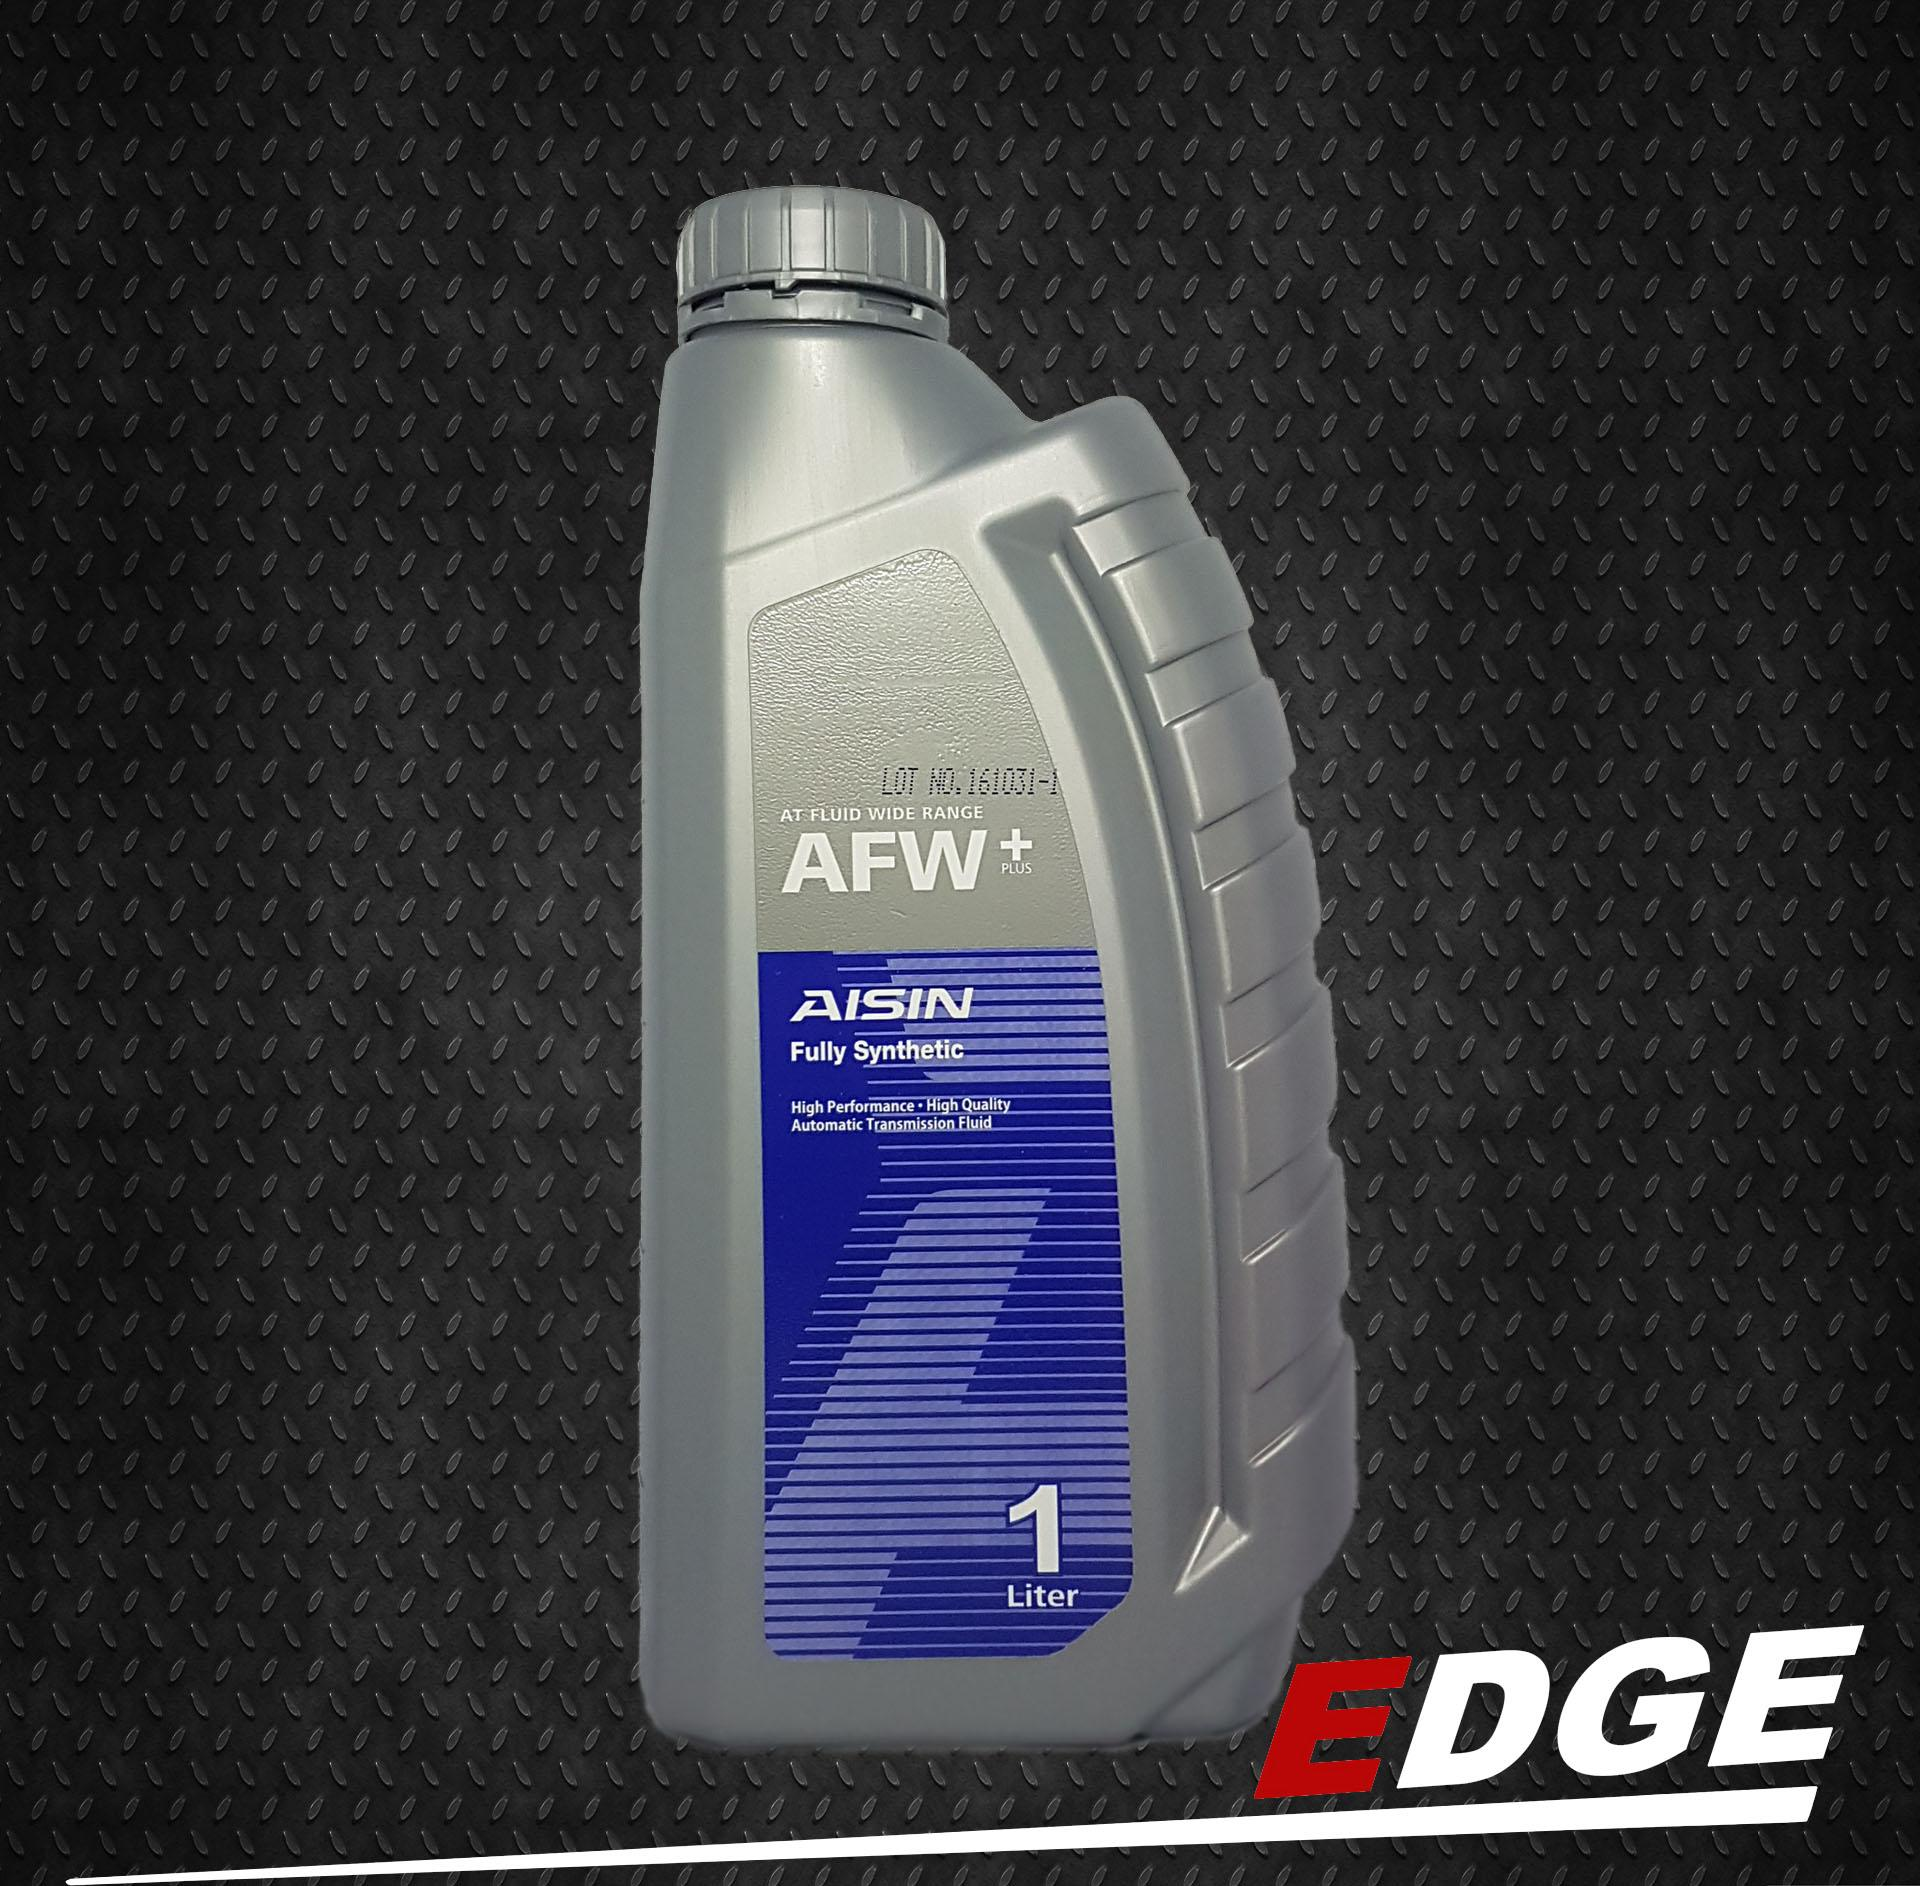 (ATF - ASIN - 1L) AISIN Fully Synthetic AT Fluid Wide Range AFW+ Automatic